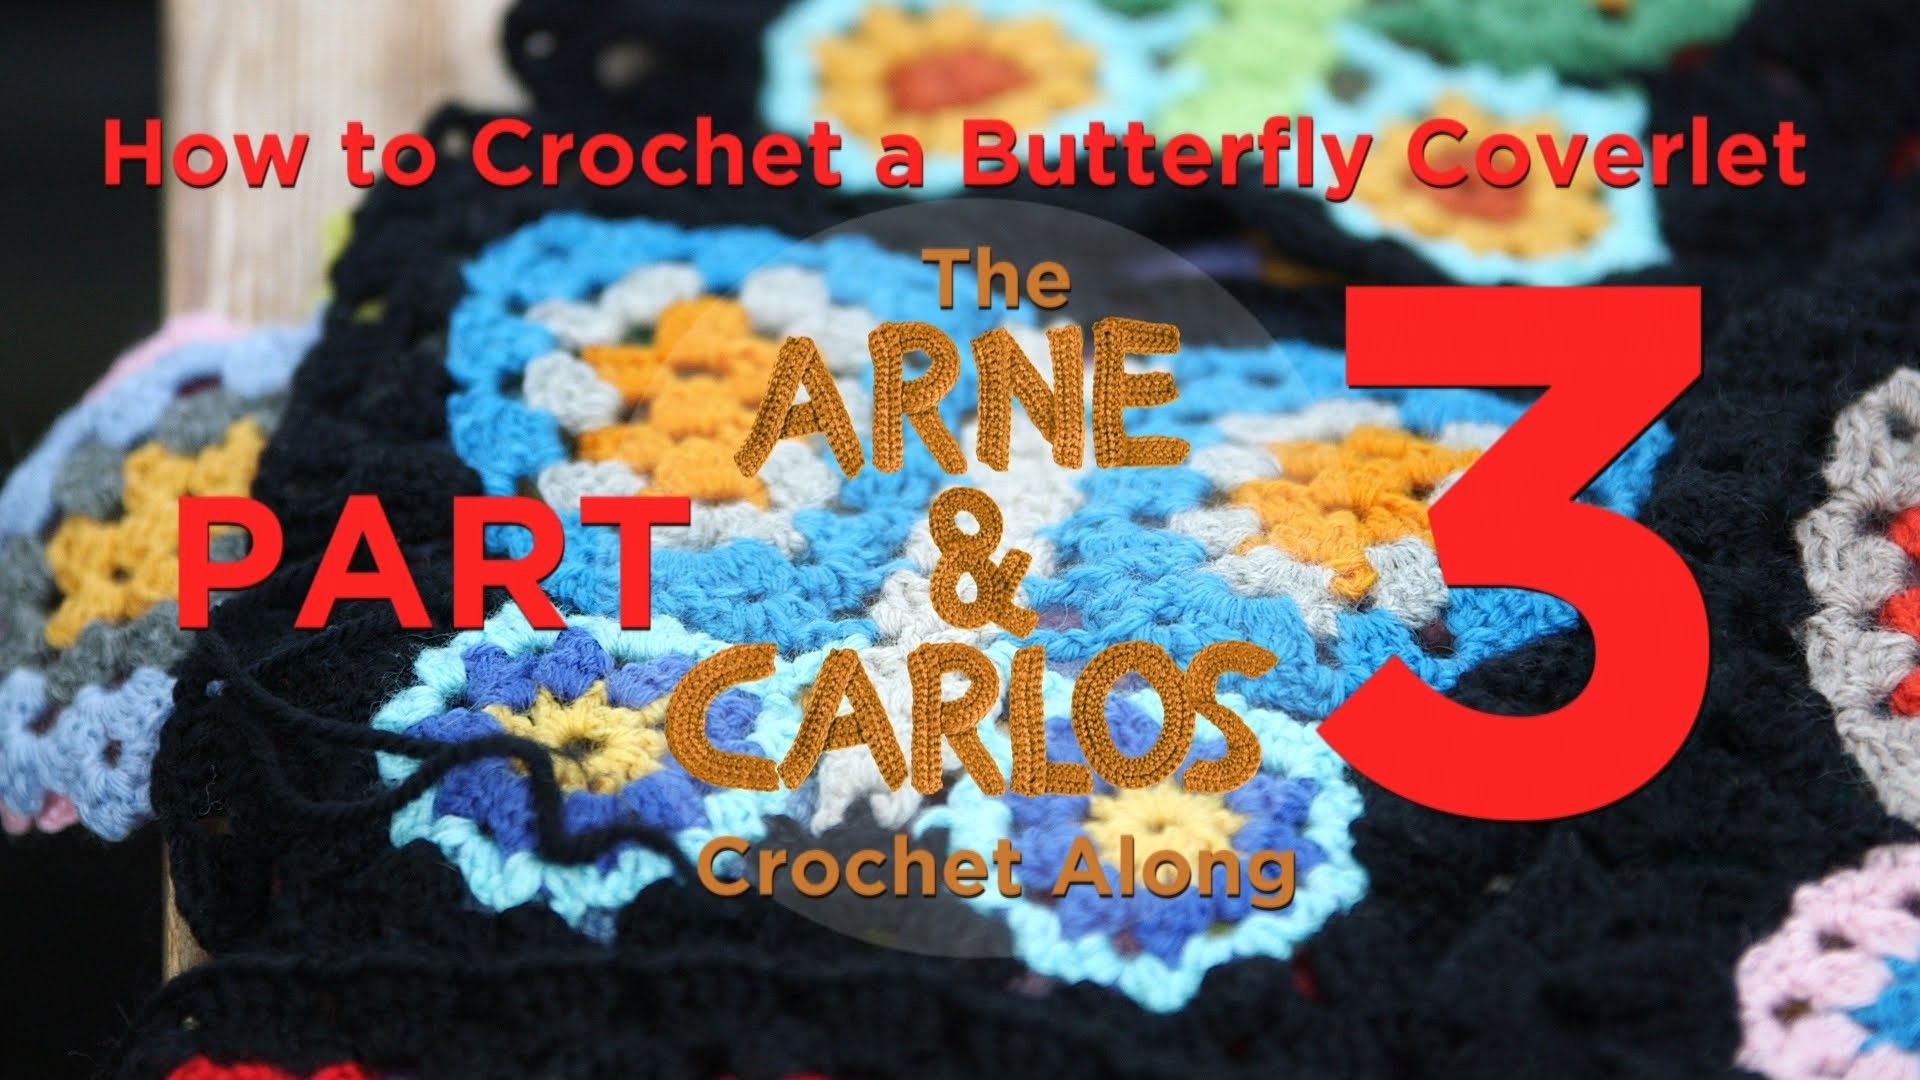 How to Crochet a Butterfly Coverlet, The ARNE&CARLOS Crochet Along. Part 3